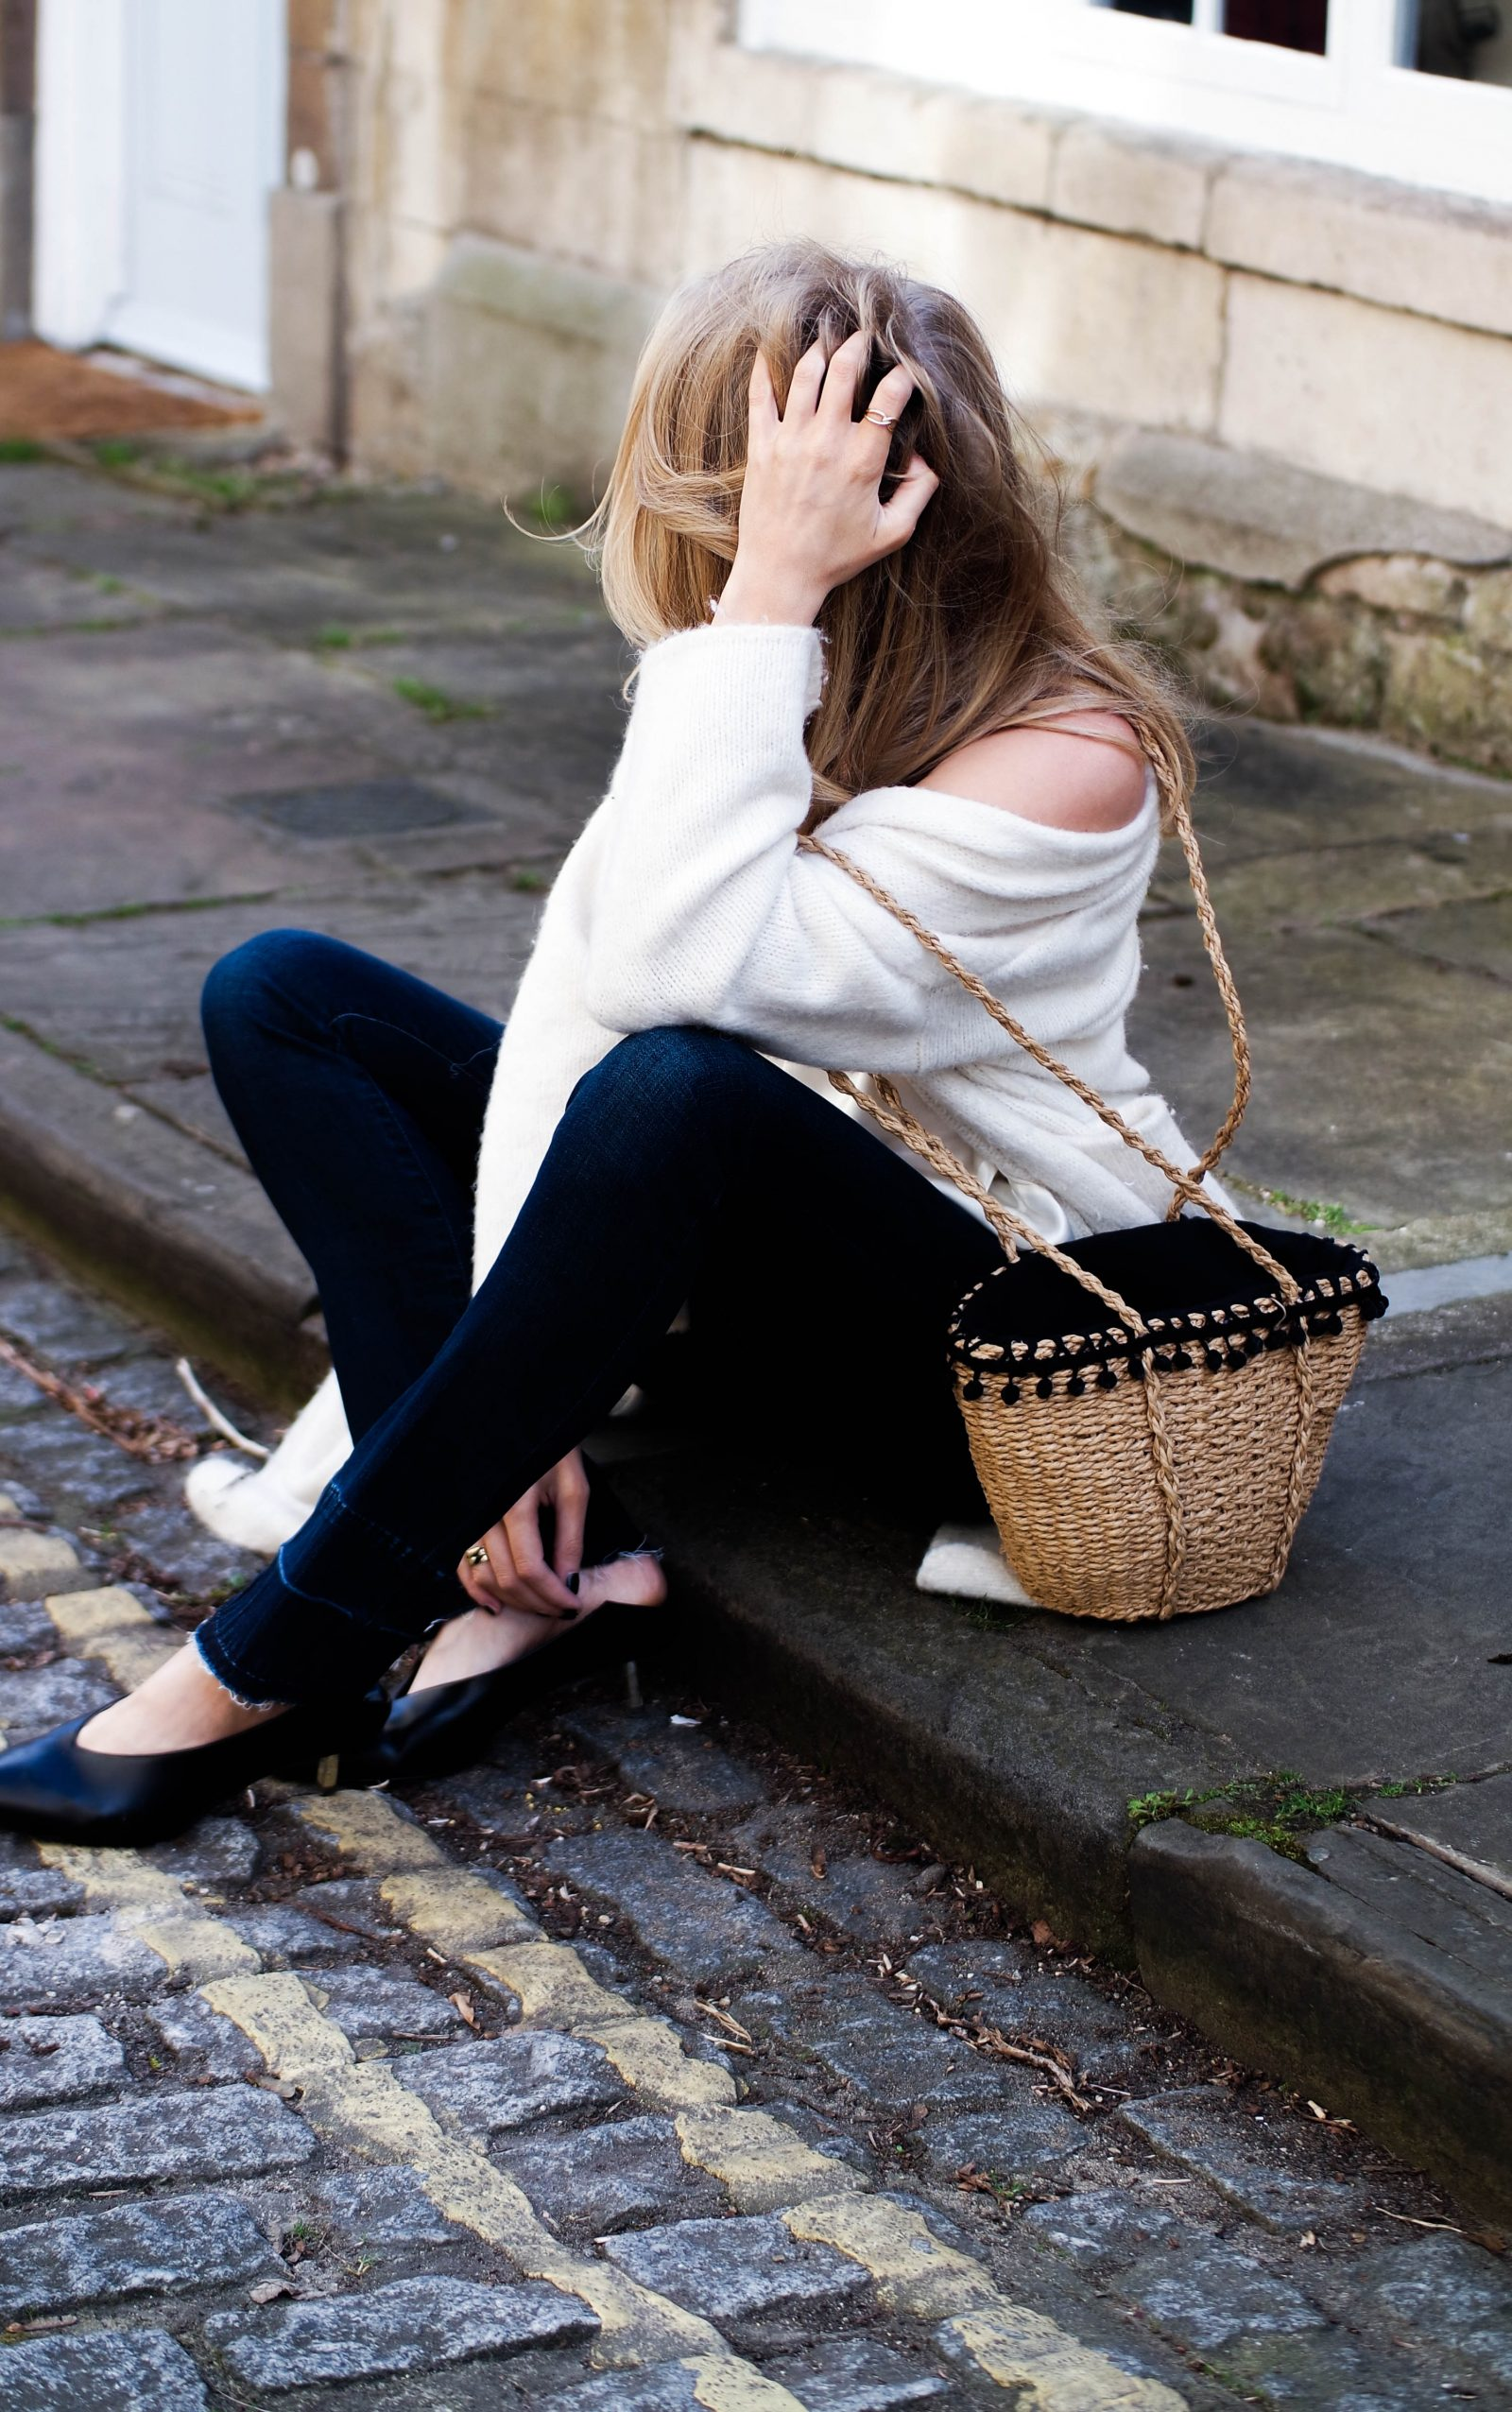 The New Denim - How To Wear Flares - Spring Street Style